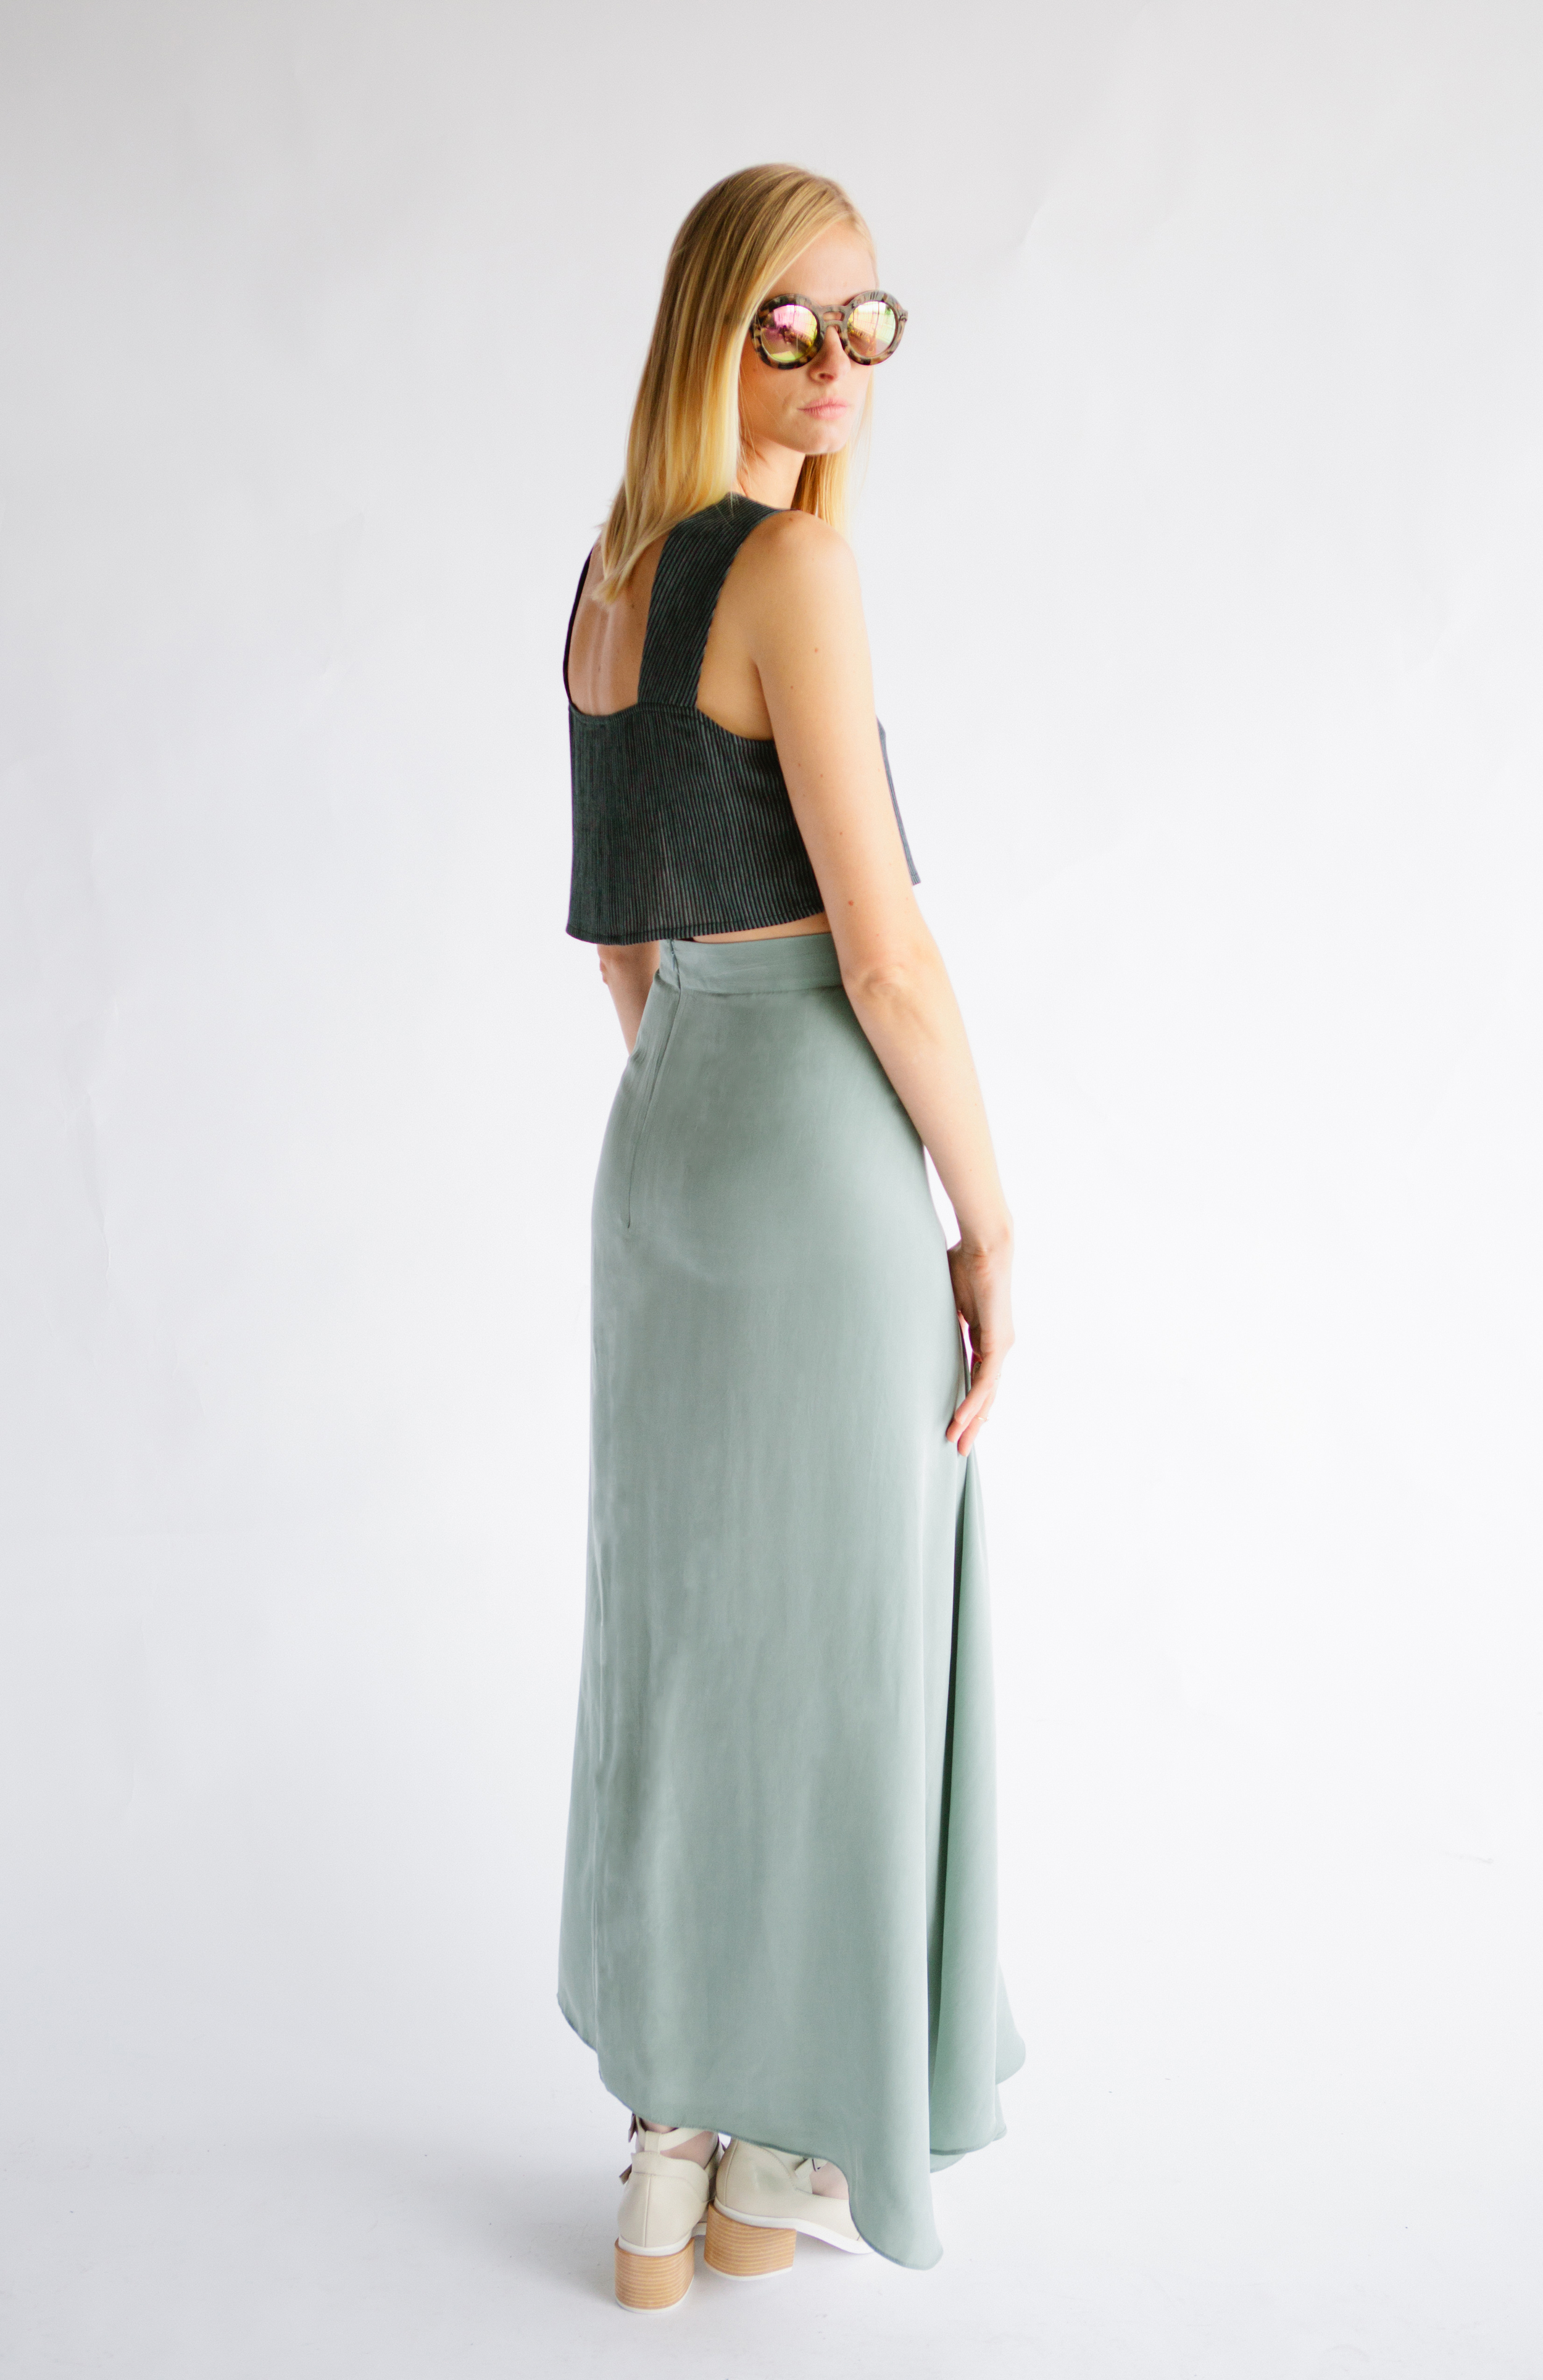 THE OLIVER TOP + JAMES SKIRT